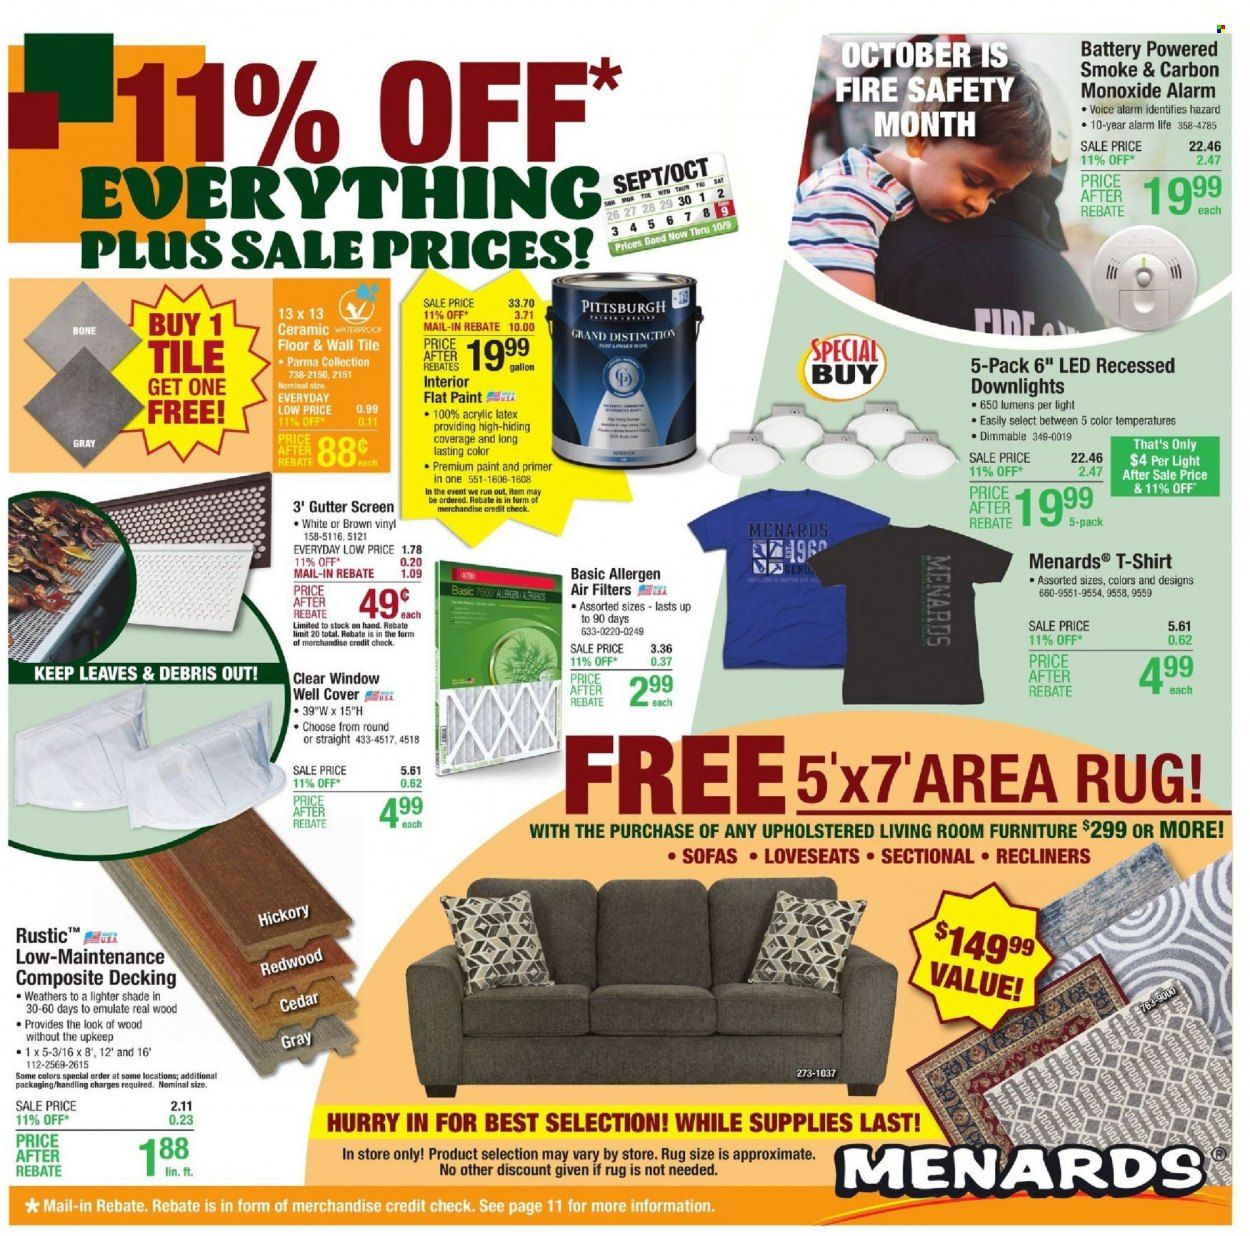 Menards Ad from october 9 to 16 2021 - Page 1